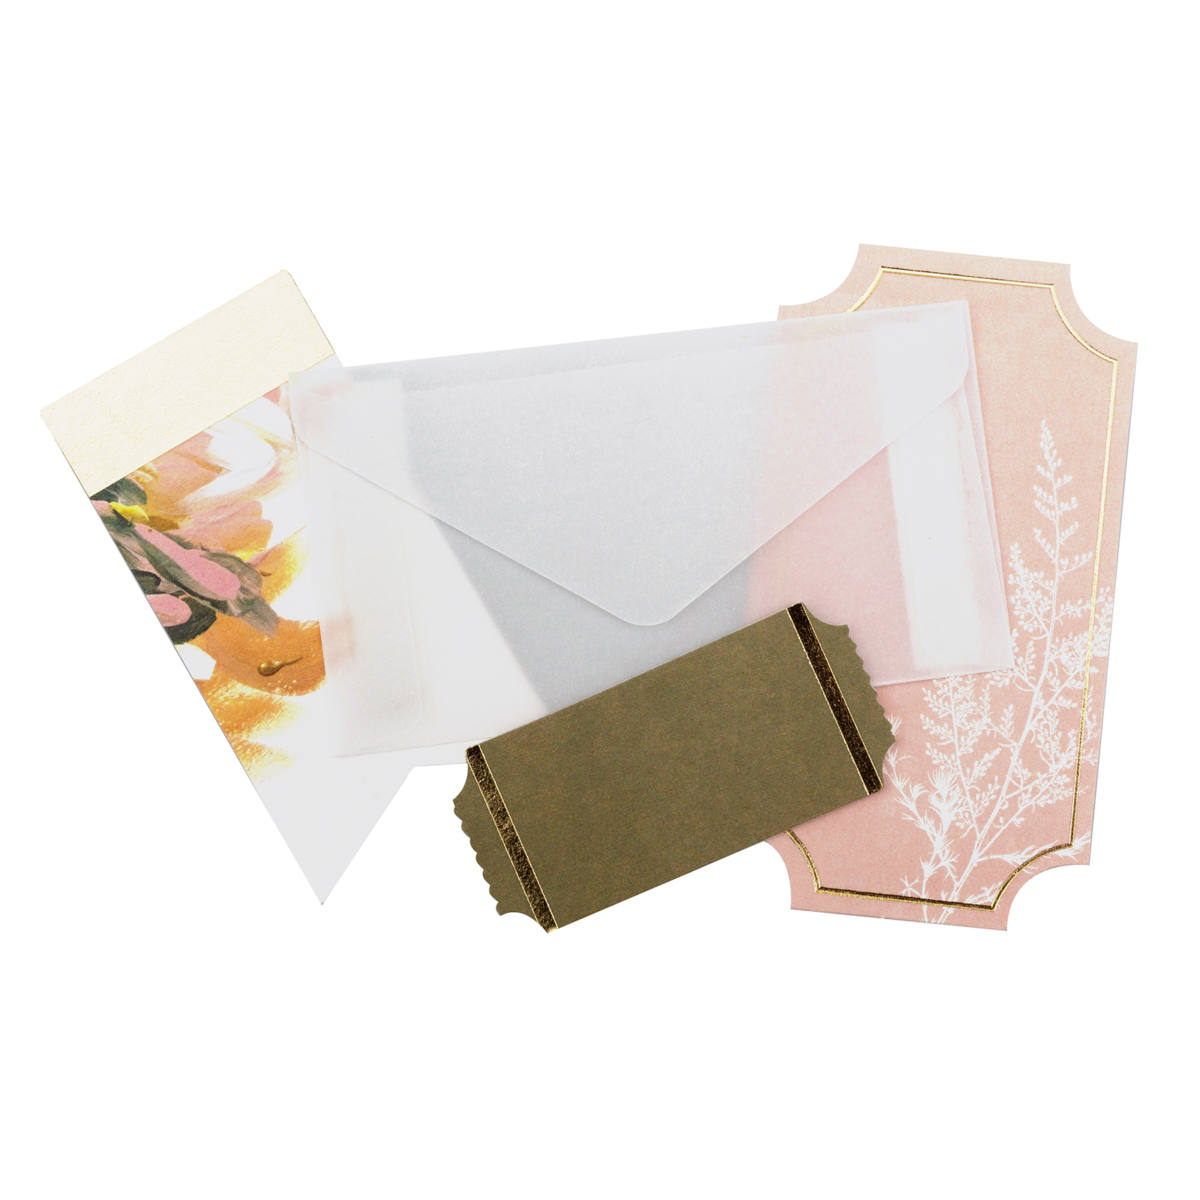 STORYLINE Chapters - Tags & envelopes